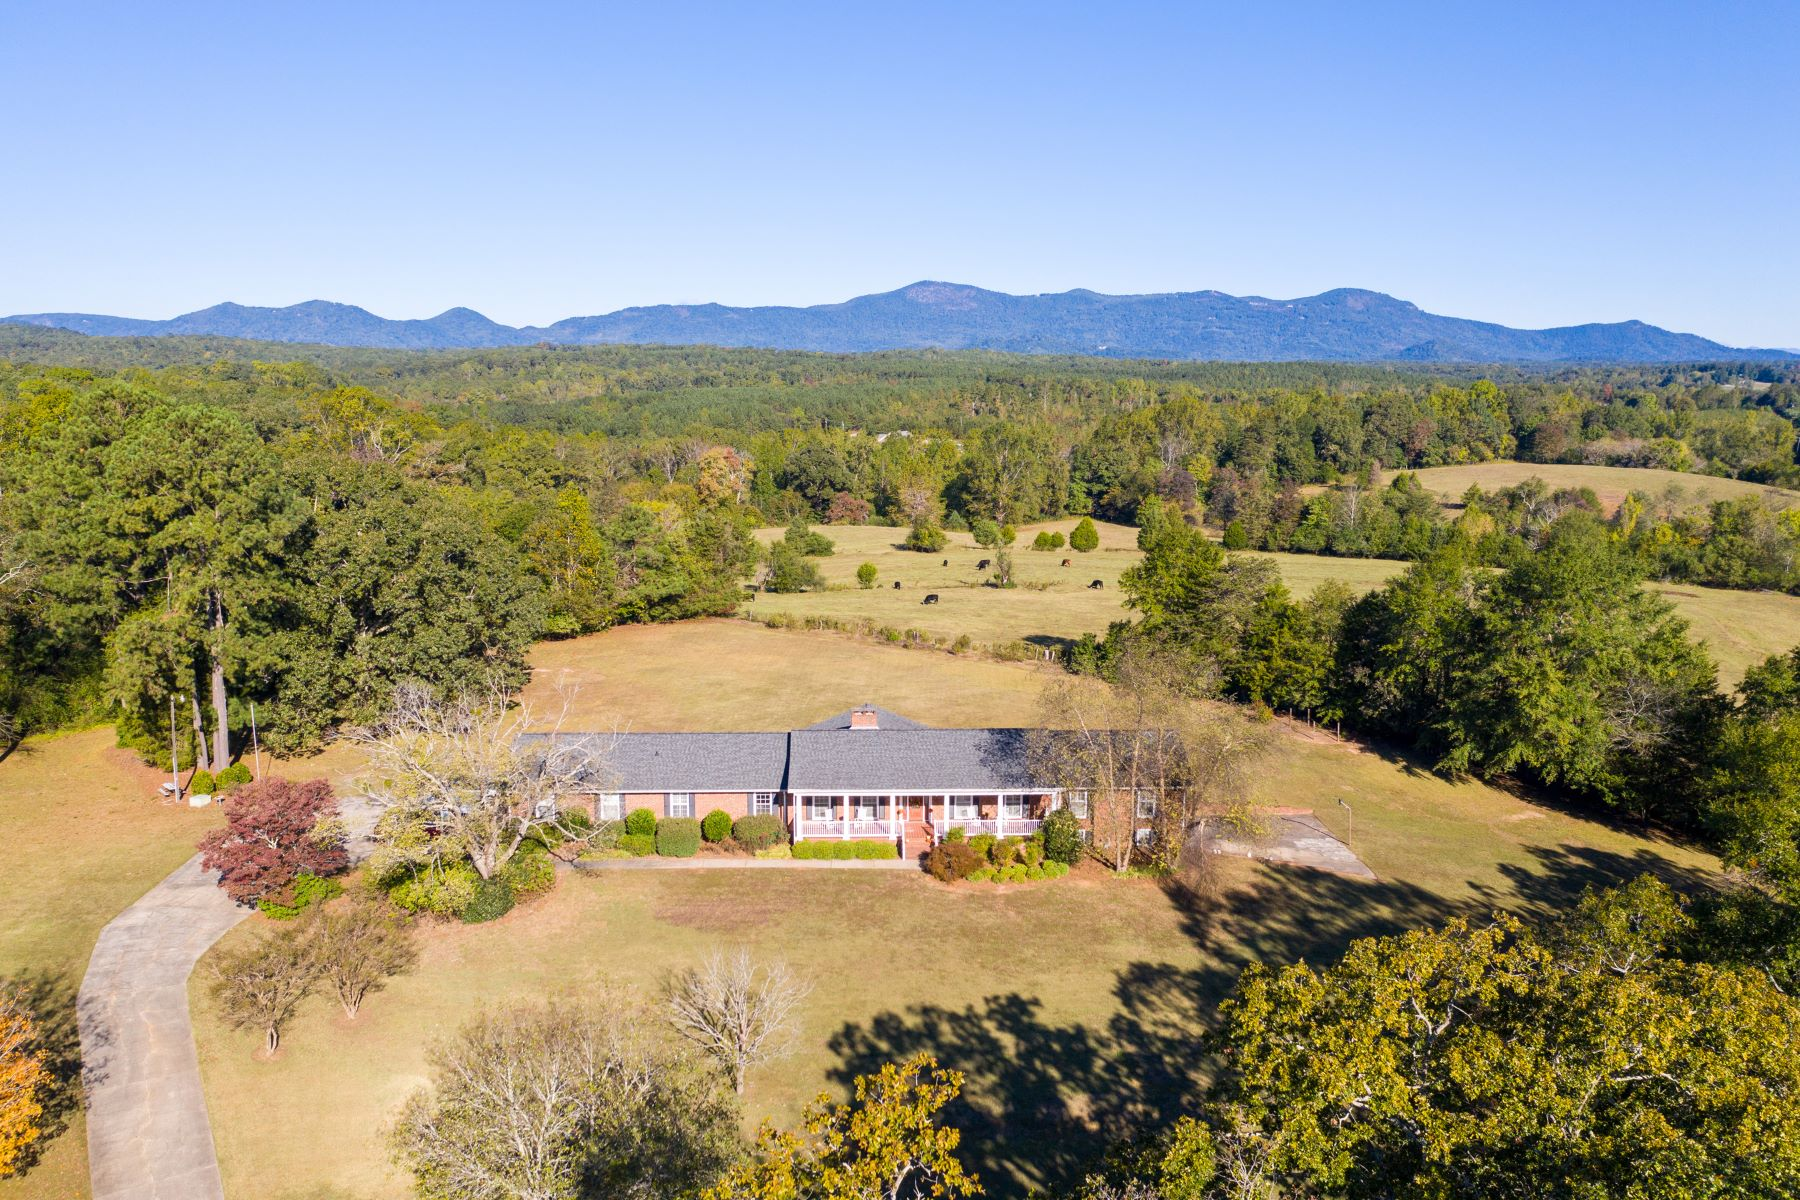 Single Family Homes for Active at Updated home on 5+ acres with breathtaking mountain views! 611 E Prince Road Landrum, South Carolina 29356 United States